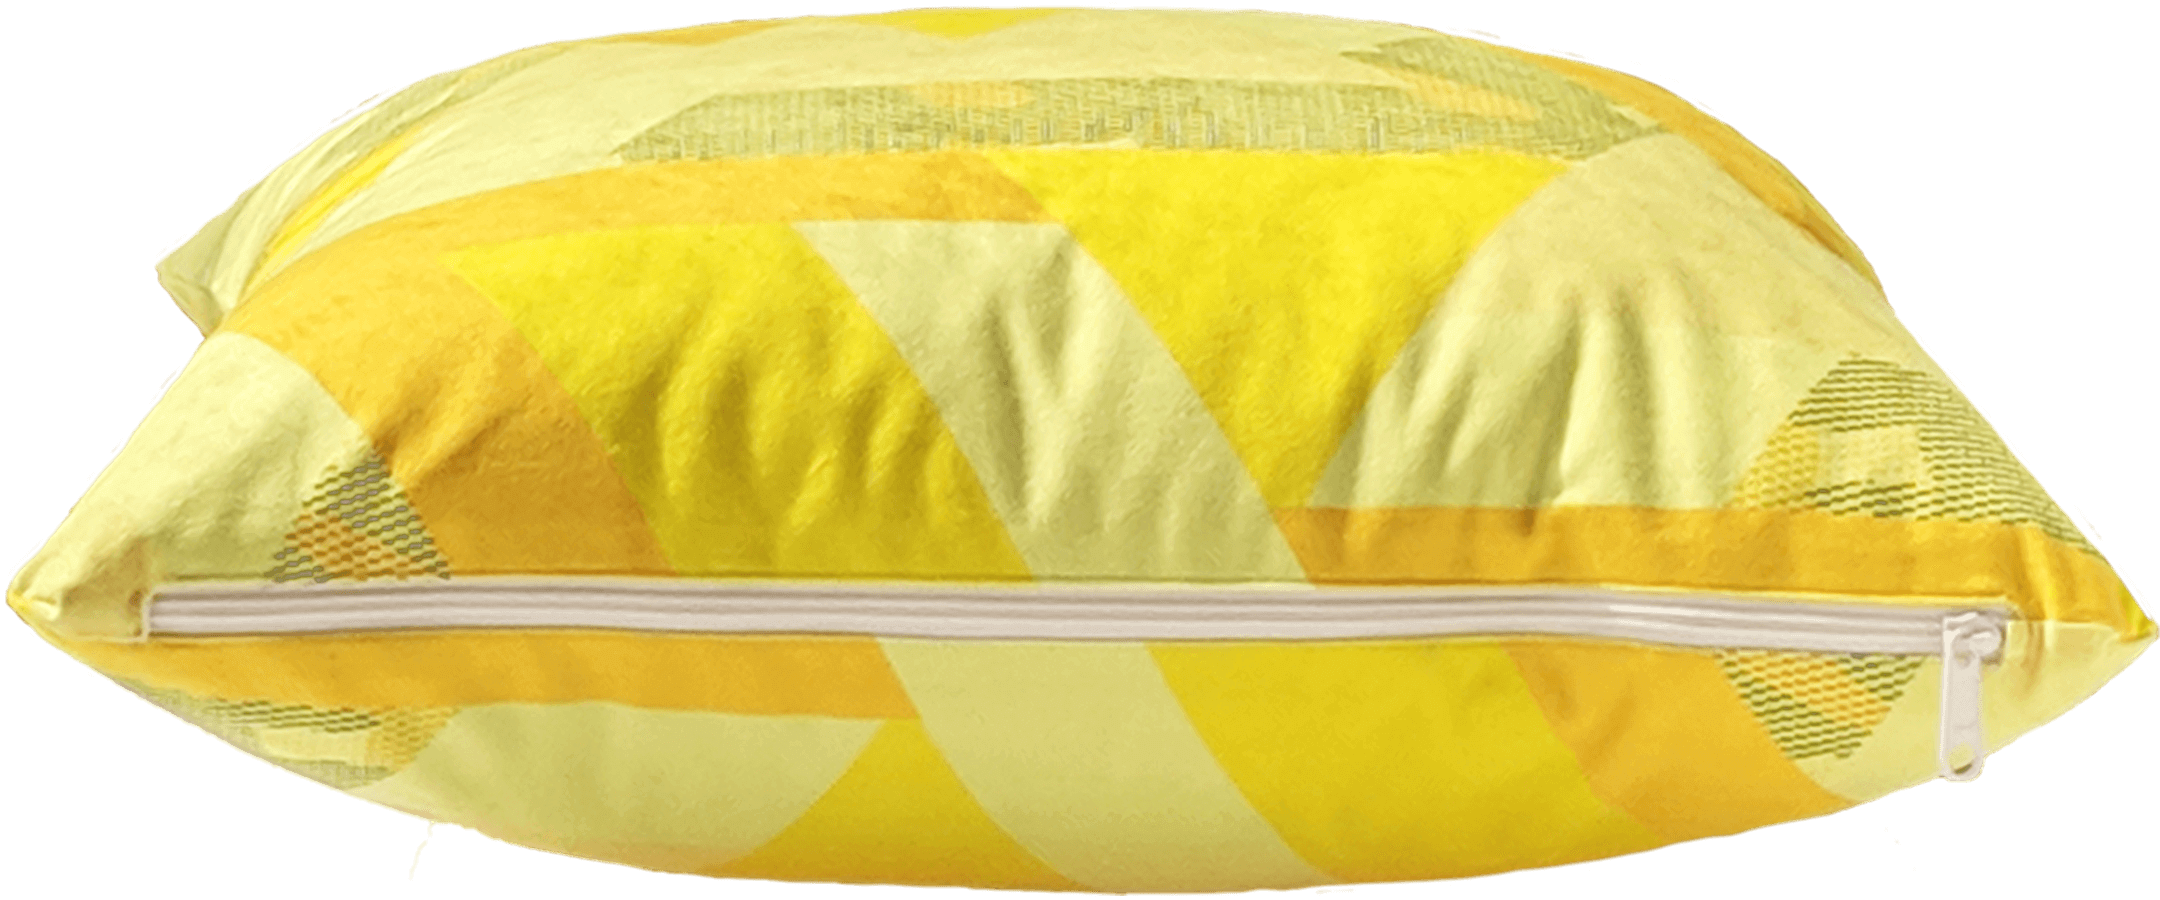 Yellow removable washable throw pillow with zipper showing